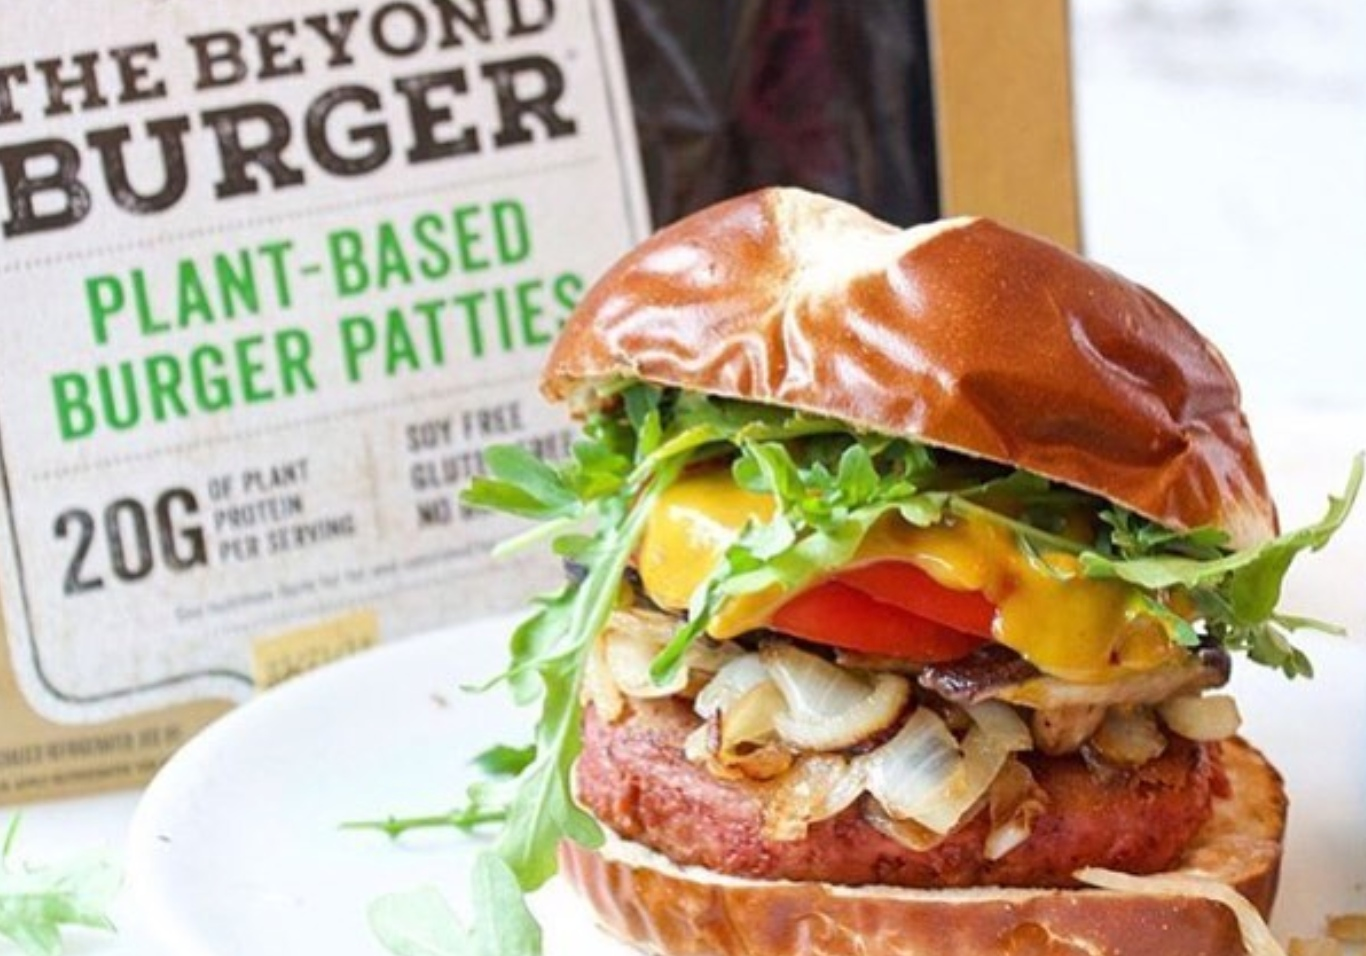 The vegan Beyond Burger